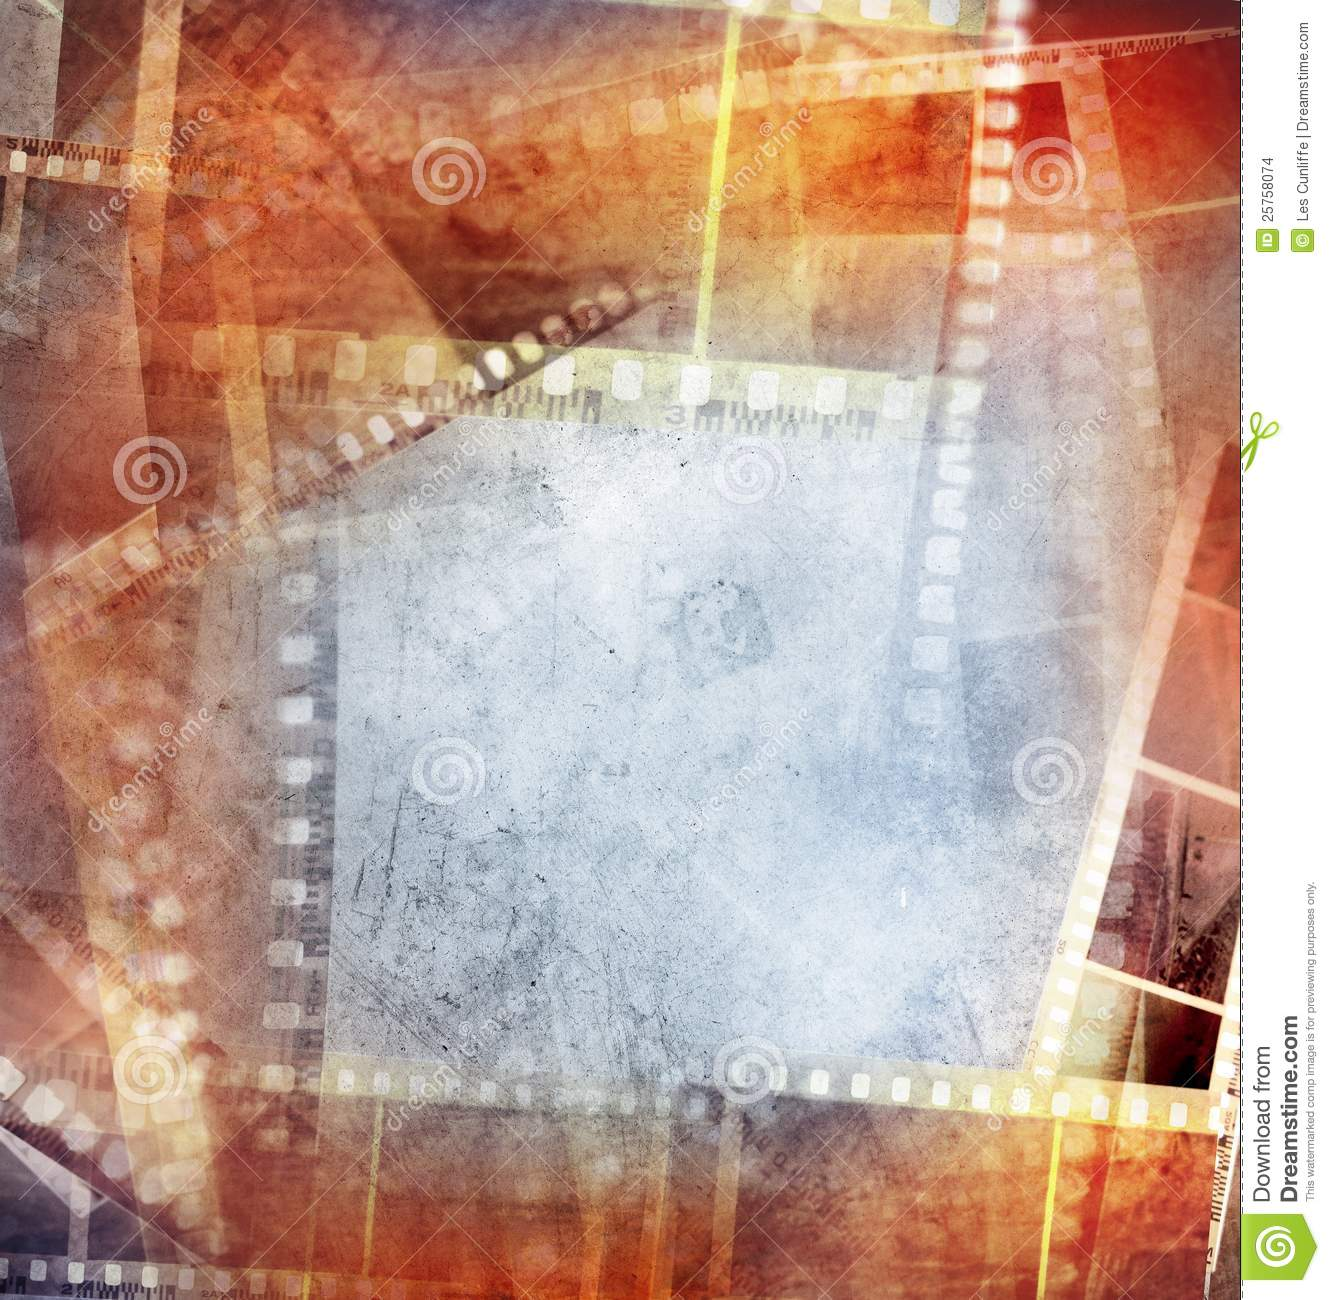 Film negative background